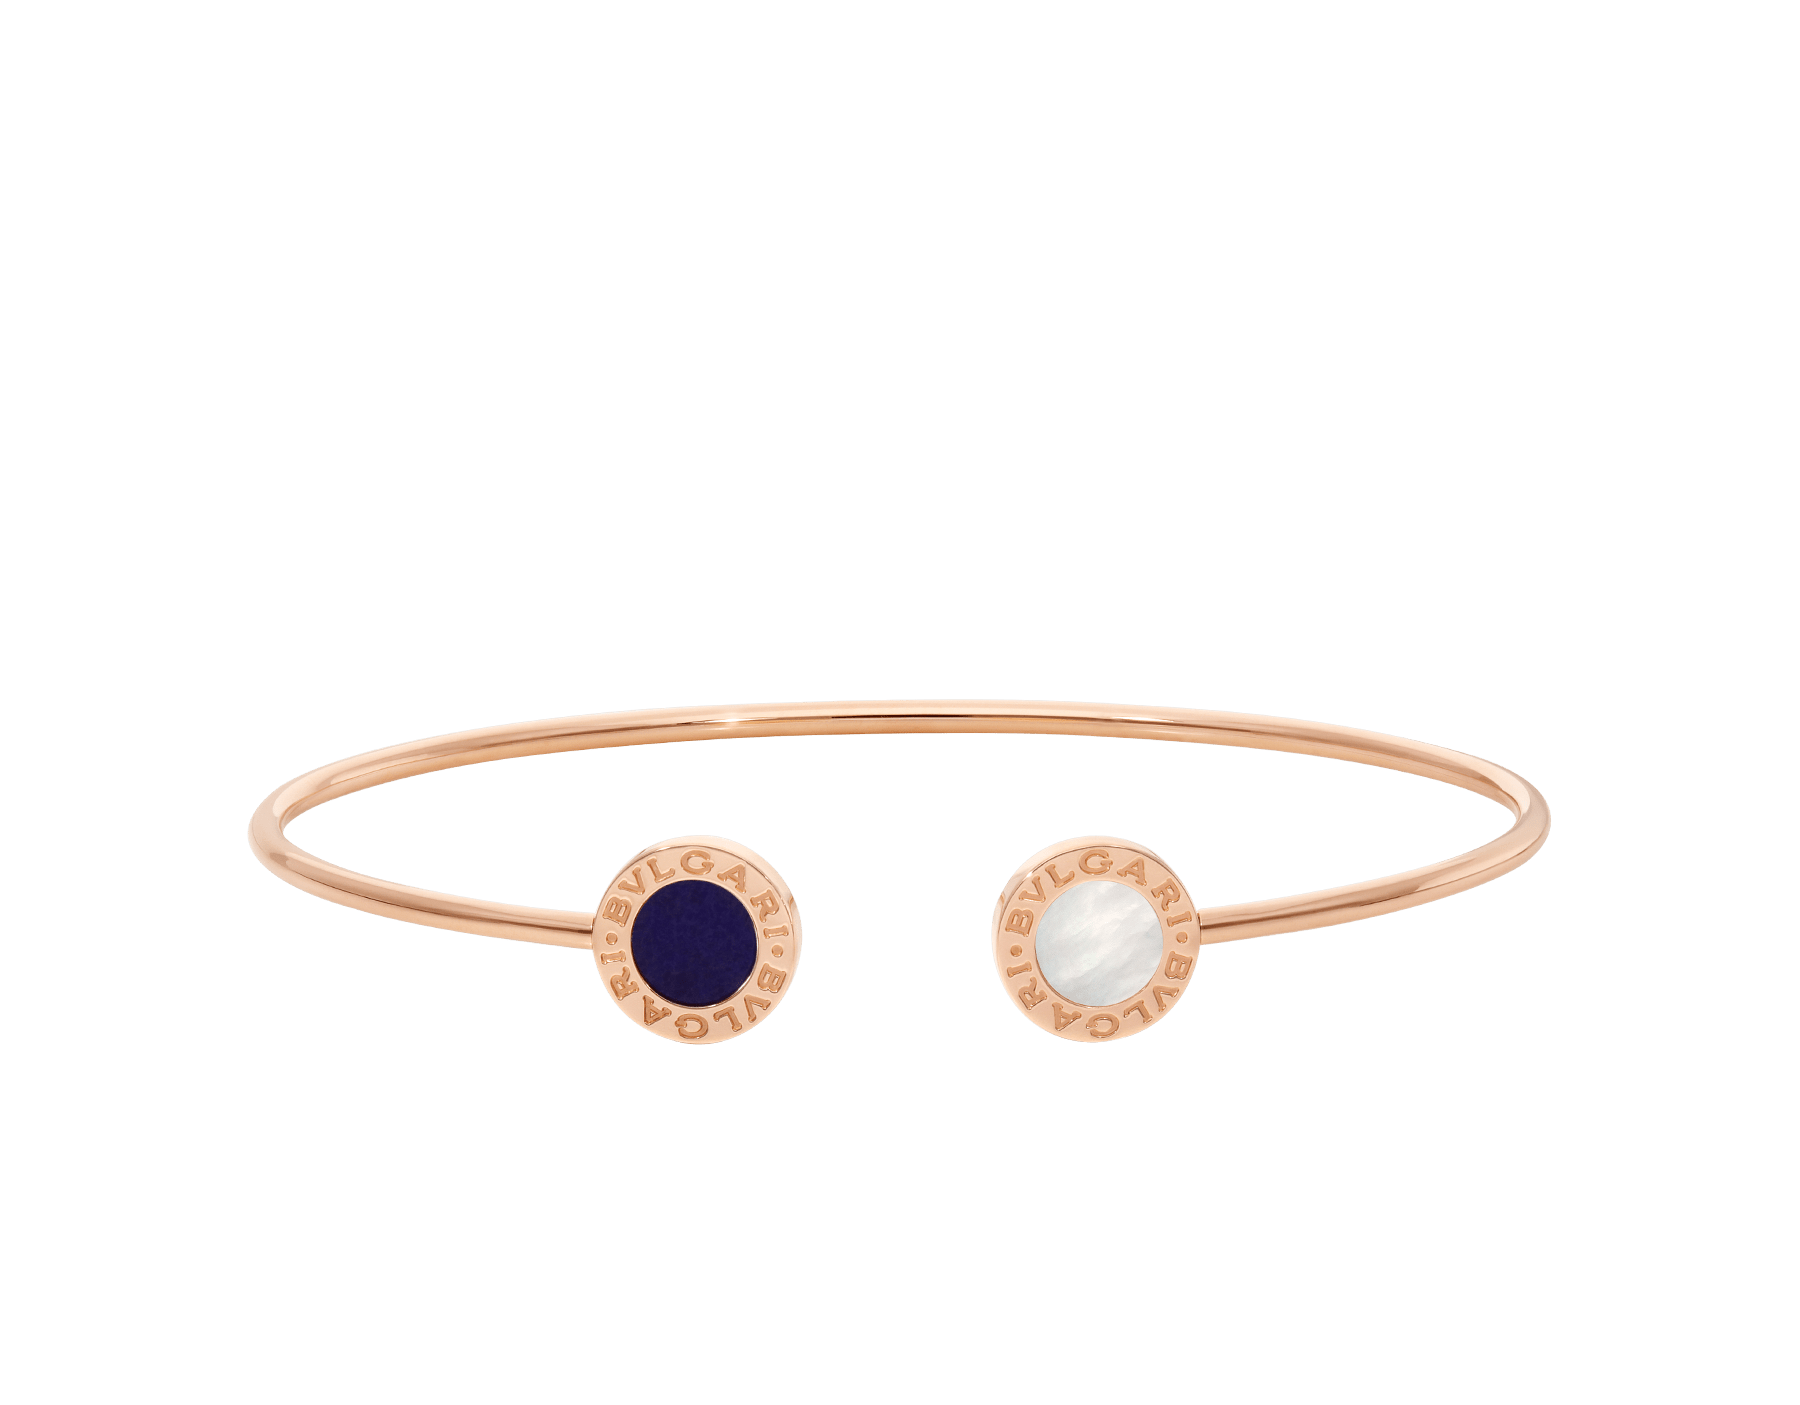 BVLGARI BVLGARI 18 kt rose gold bracelet set with mother-of-pearl and sugilite elements BR858694 image 2